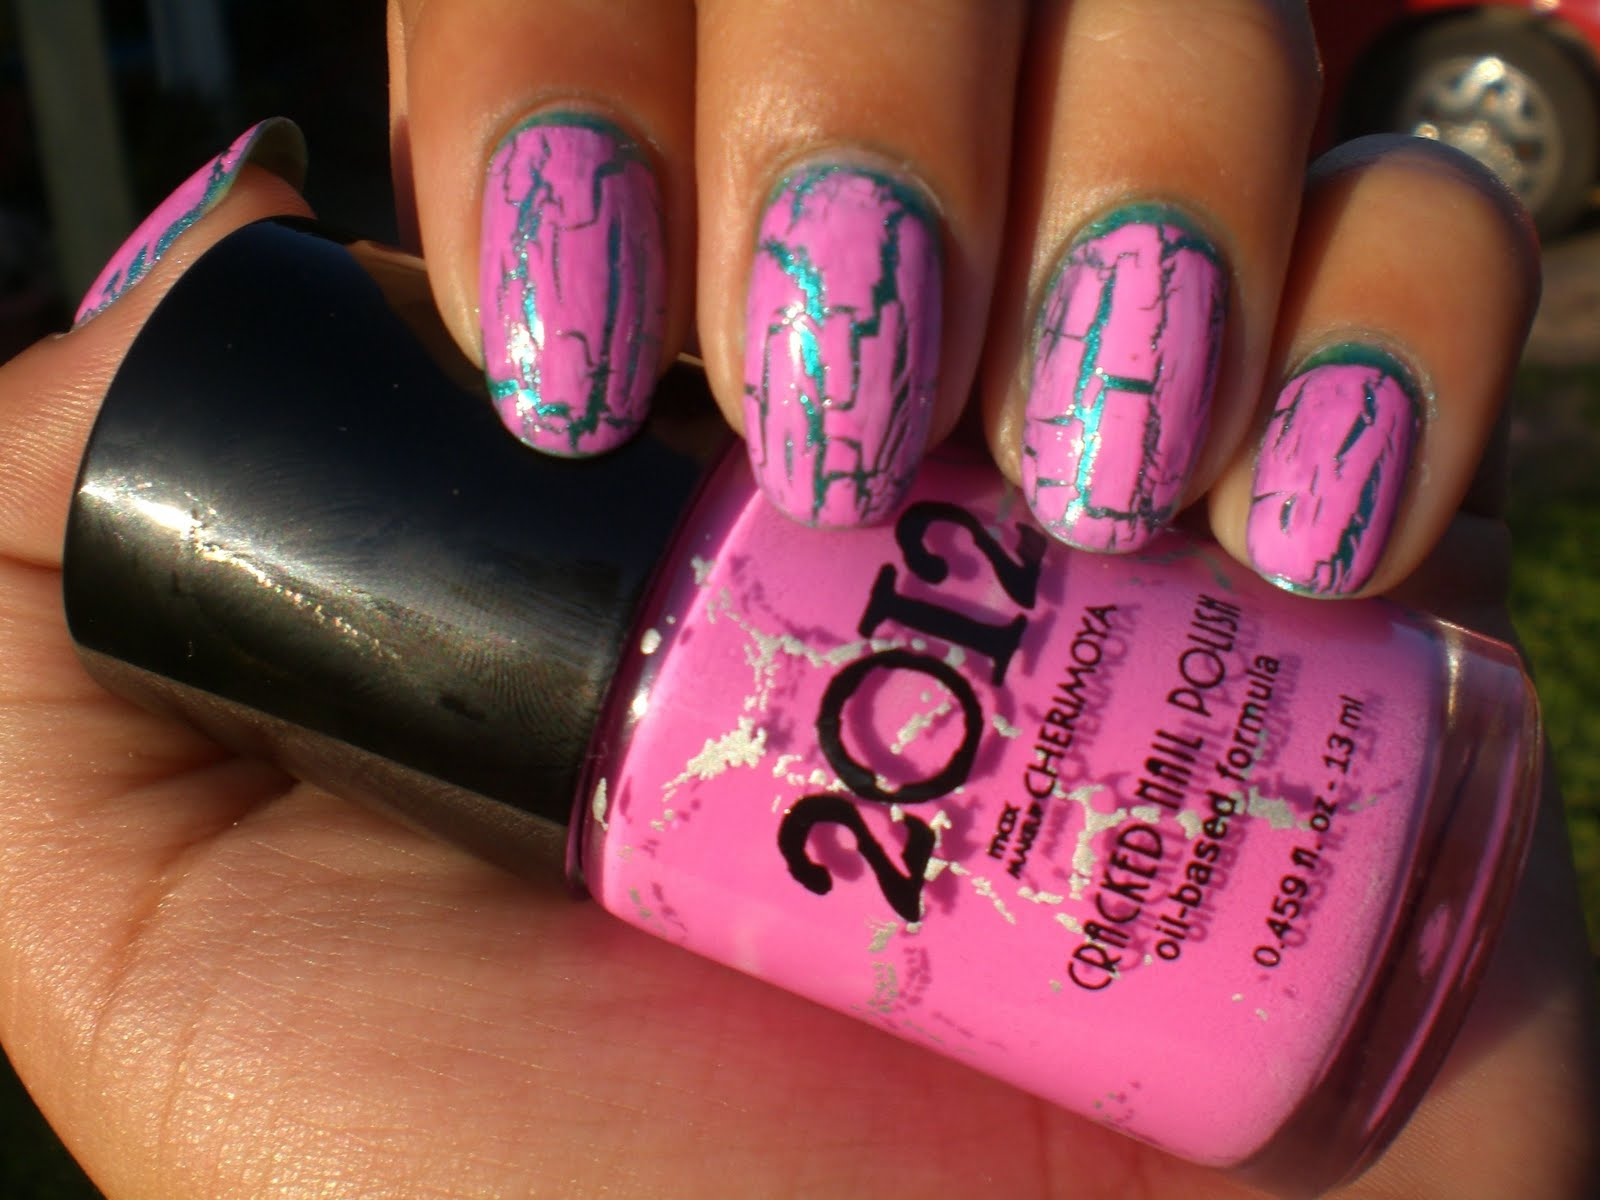 Oh Me! Oh My!: Cracked Nail Polish